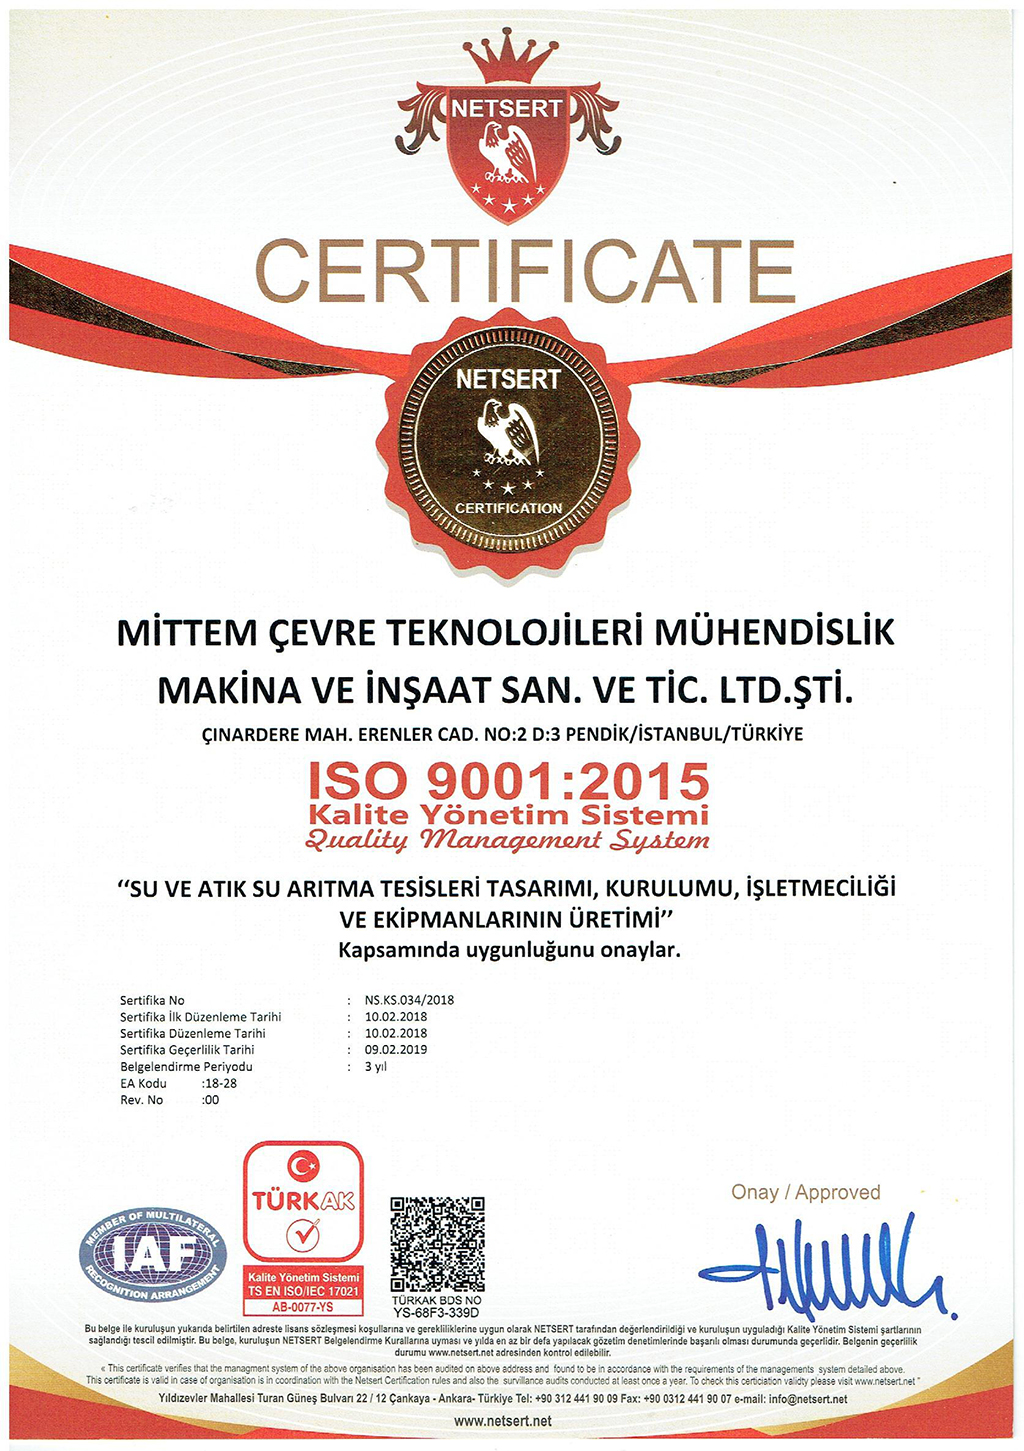 2.ISO 9001